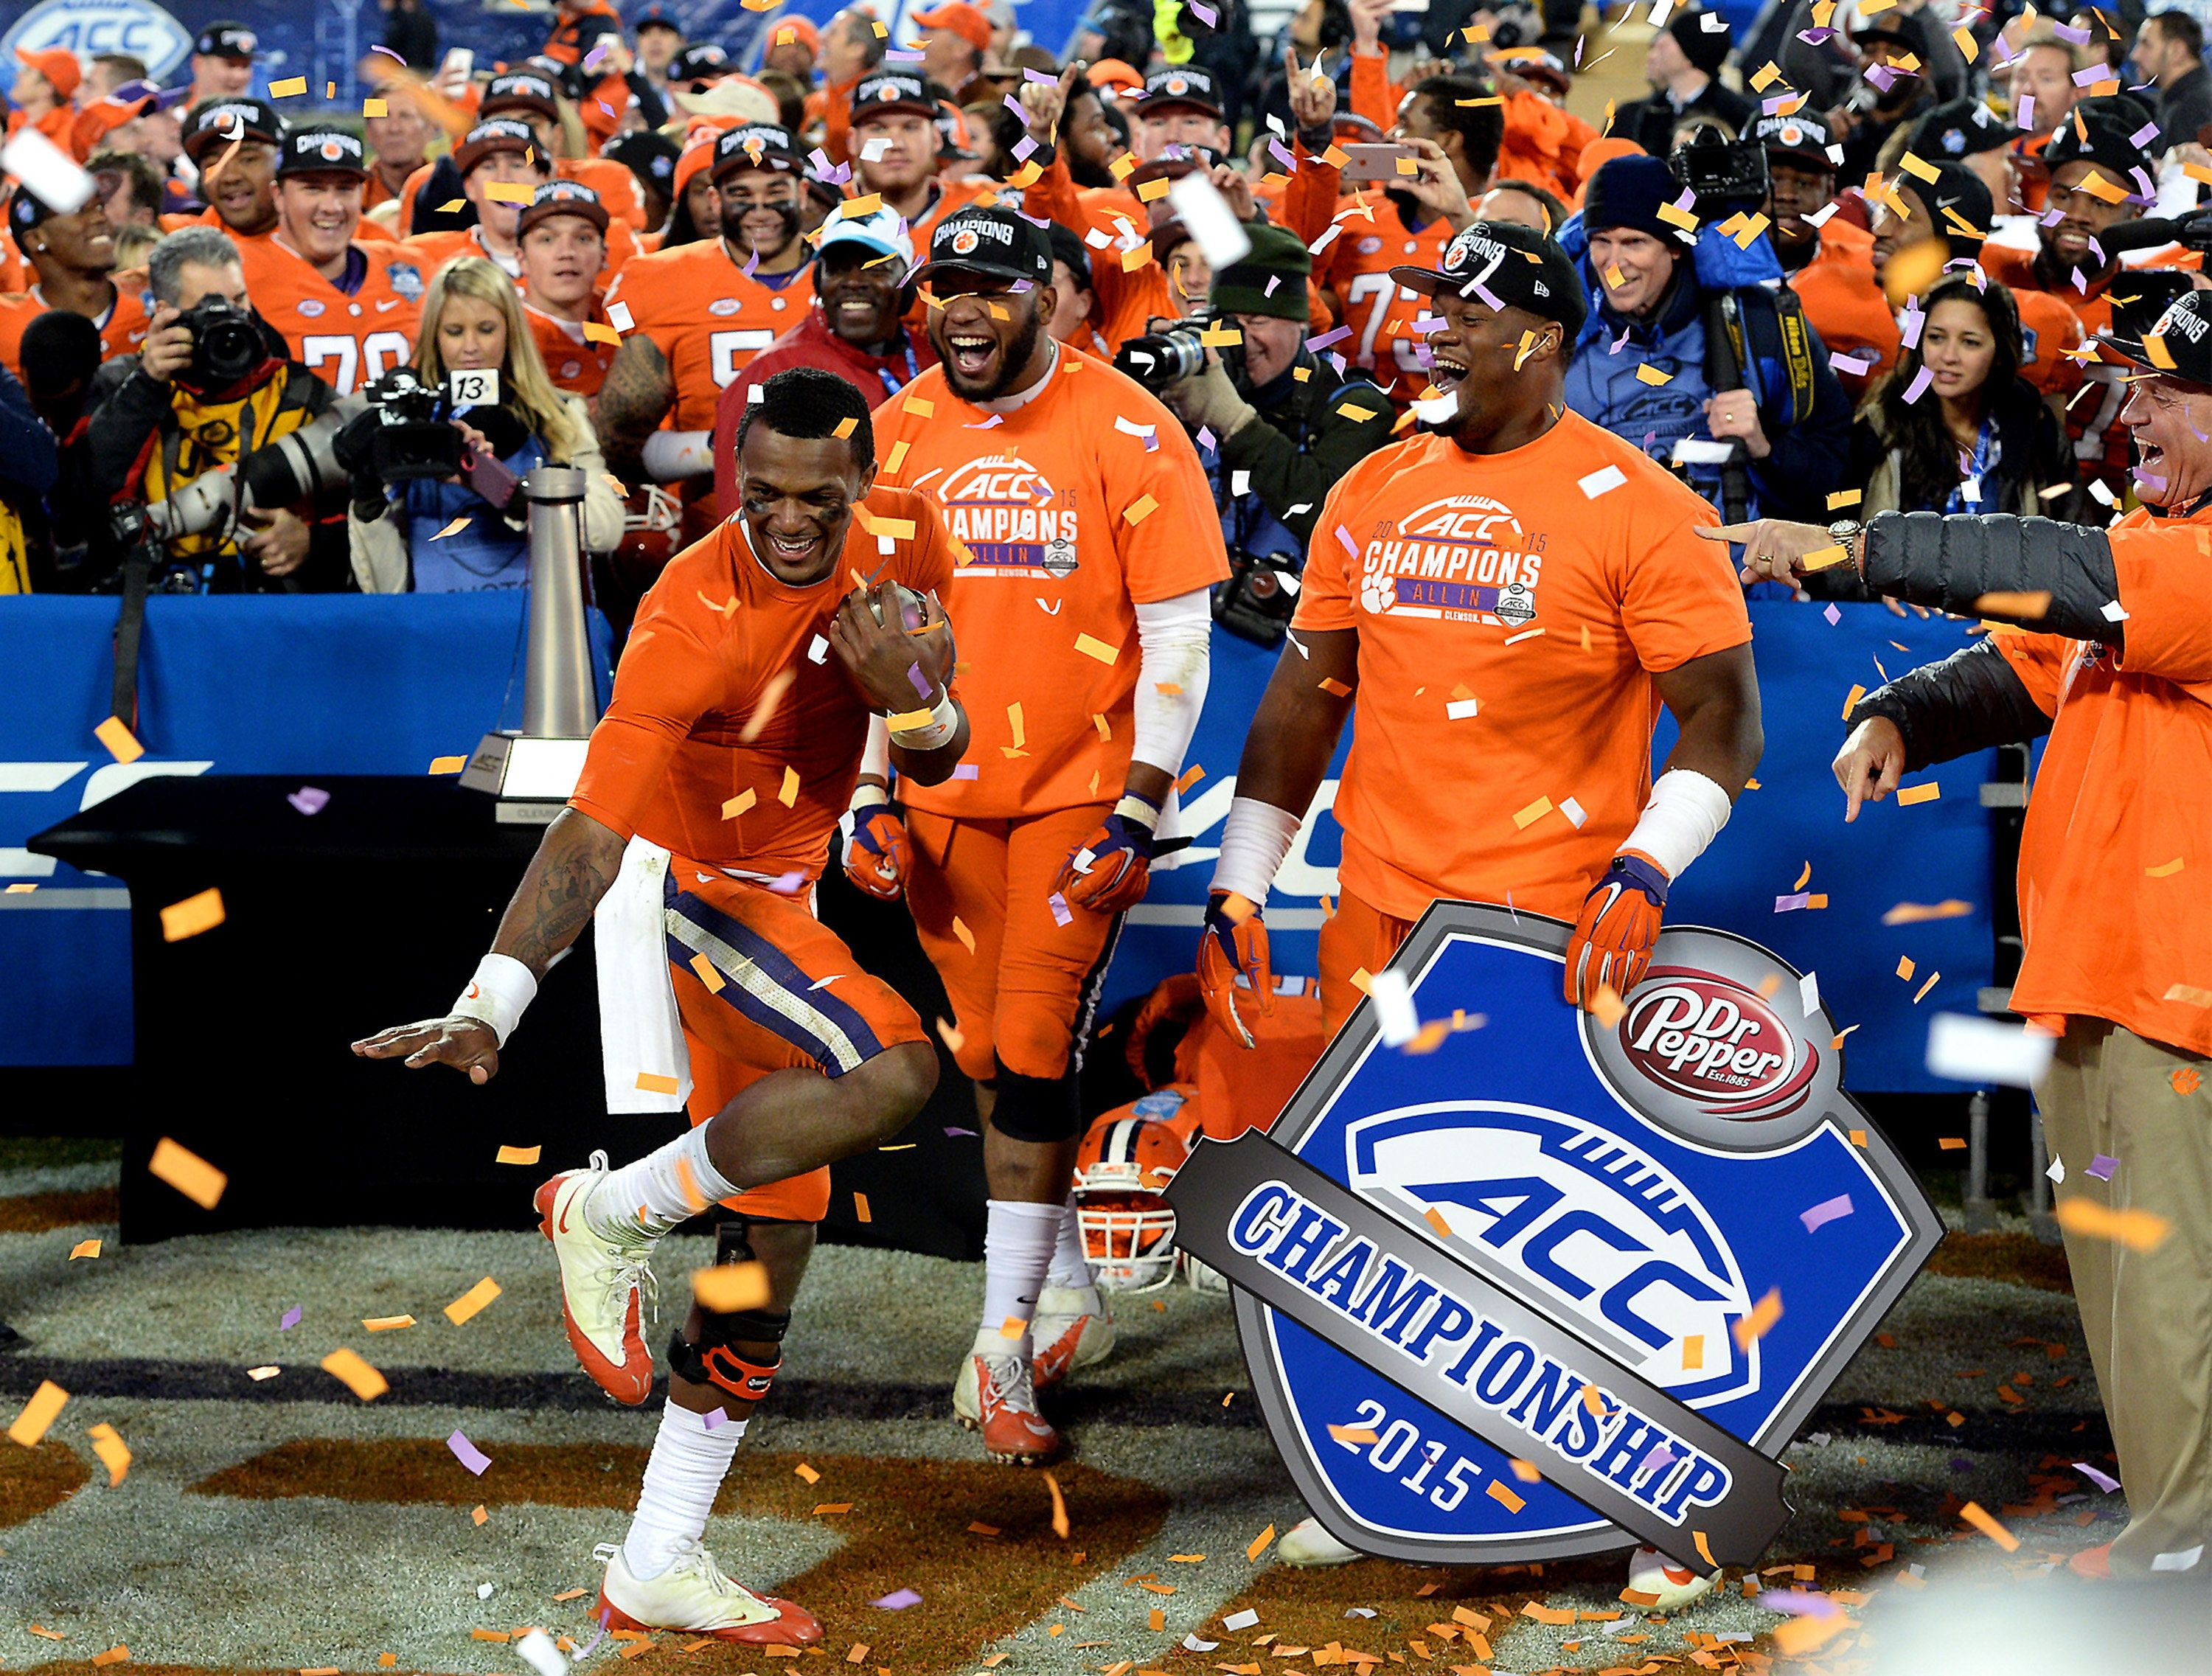 Clemson quarterback Deshaun Watson, left, strikes a Heisman pose as he and his teammates celebrate a 45-37 win against North Carolina in the ACC Football Championship at Bank of America Stadium in Charlotte, N.C., on Saturday, Dec. 5, 2015. (Jeff Siner/Charlotte Observer/TNS via Getty Images)